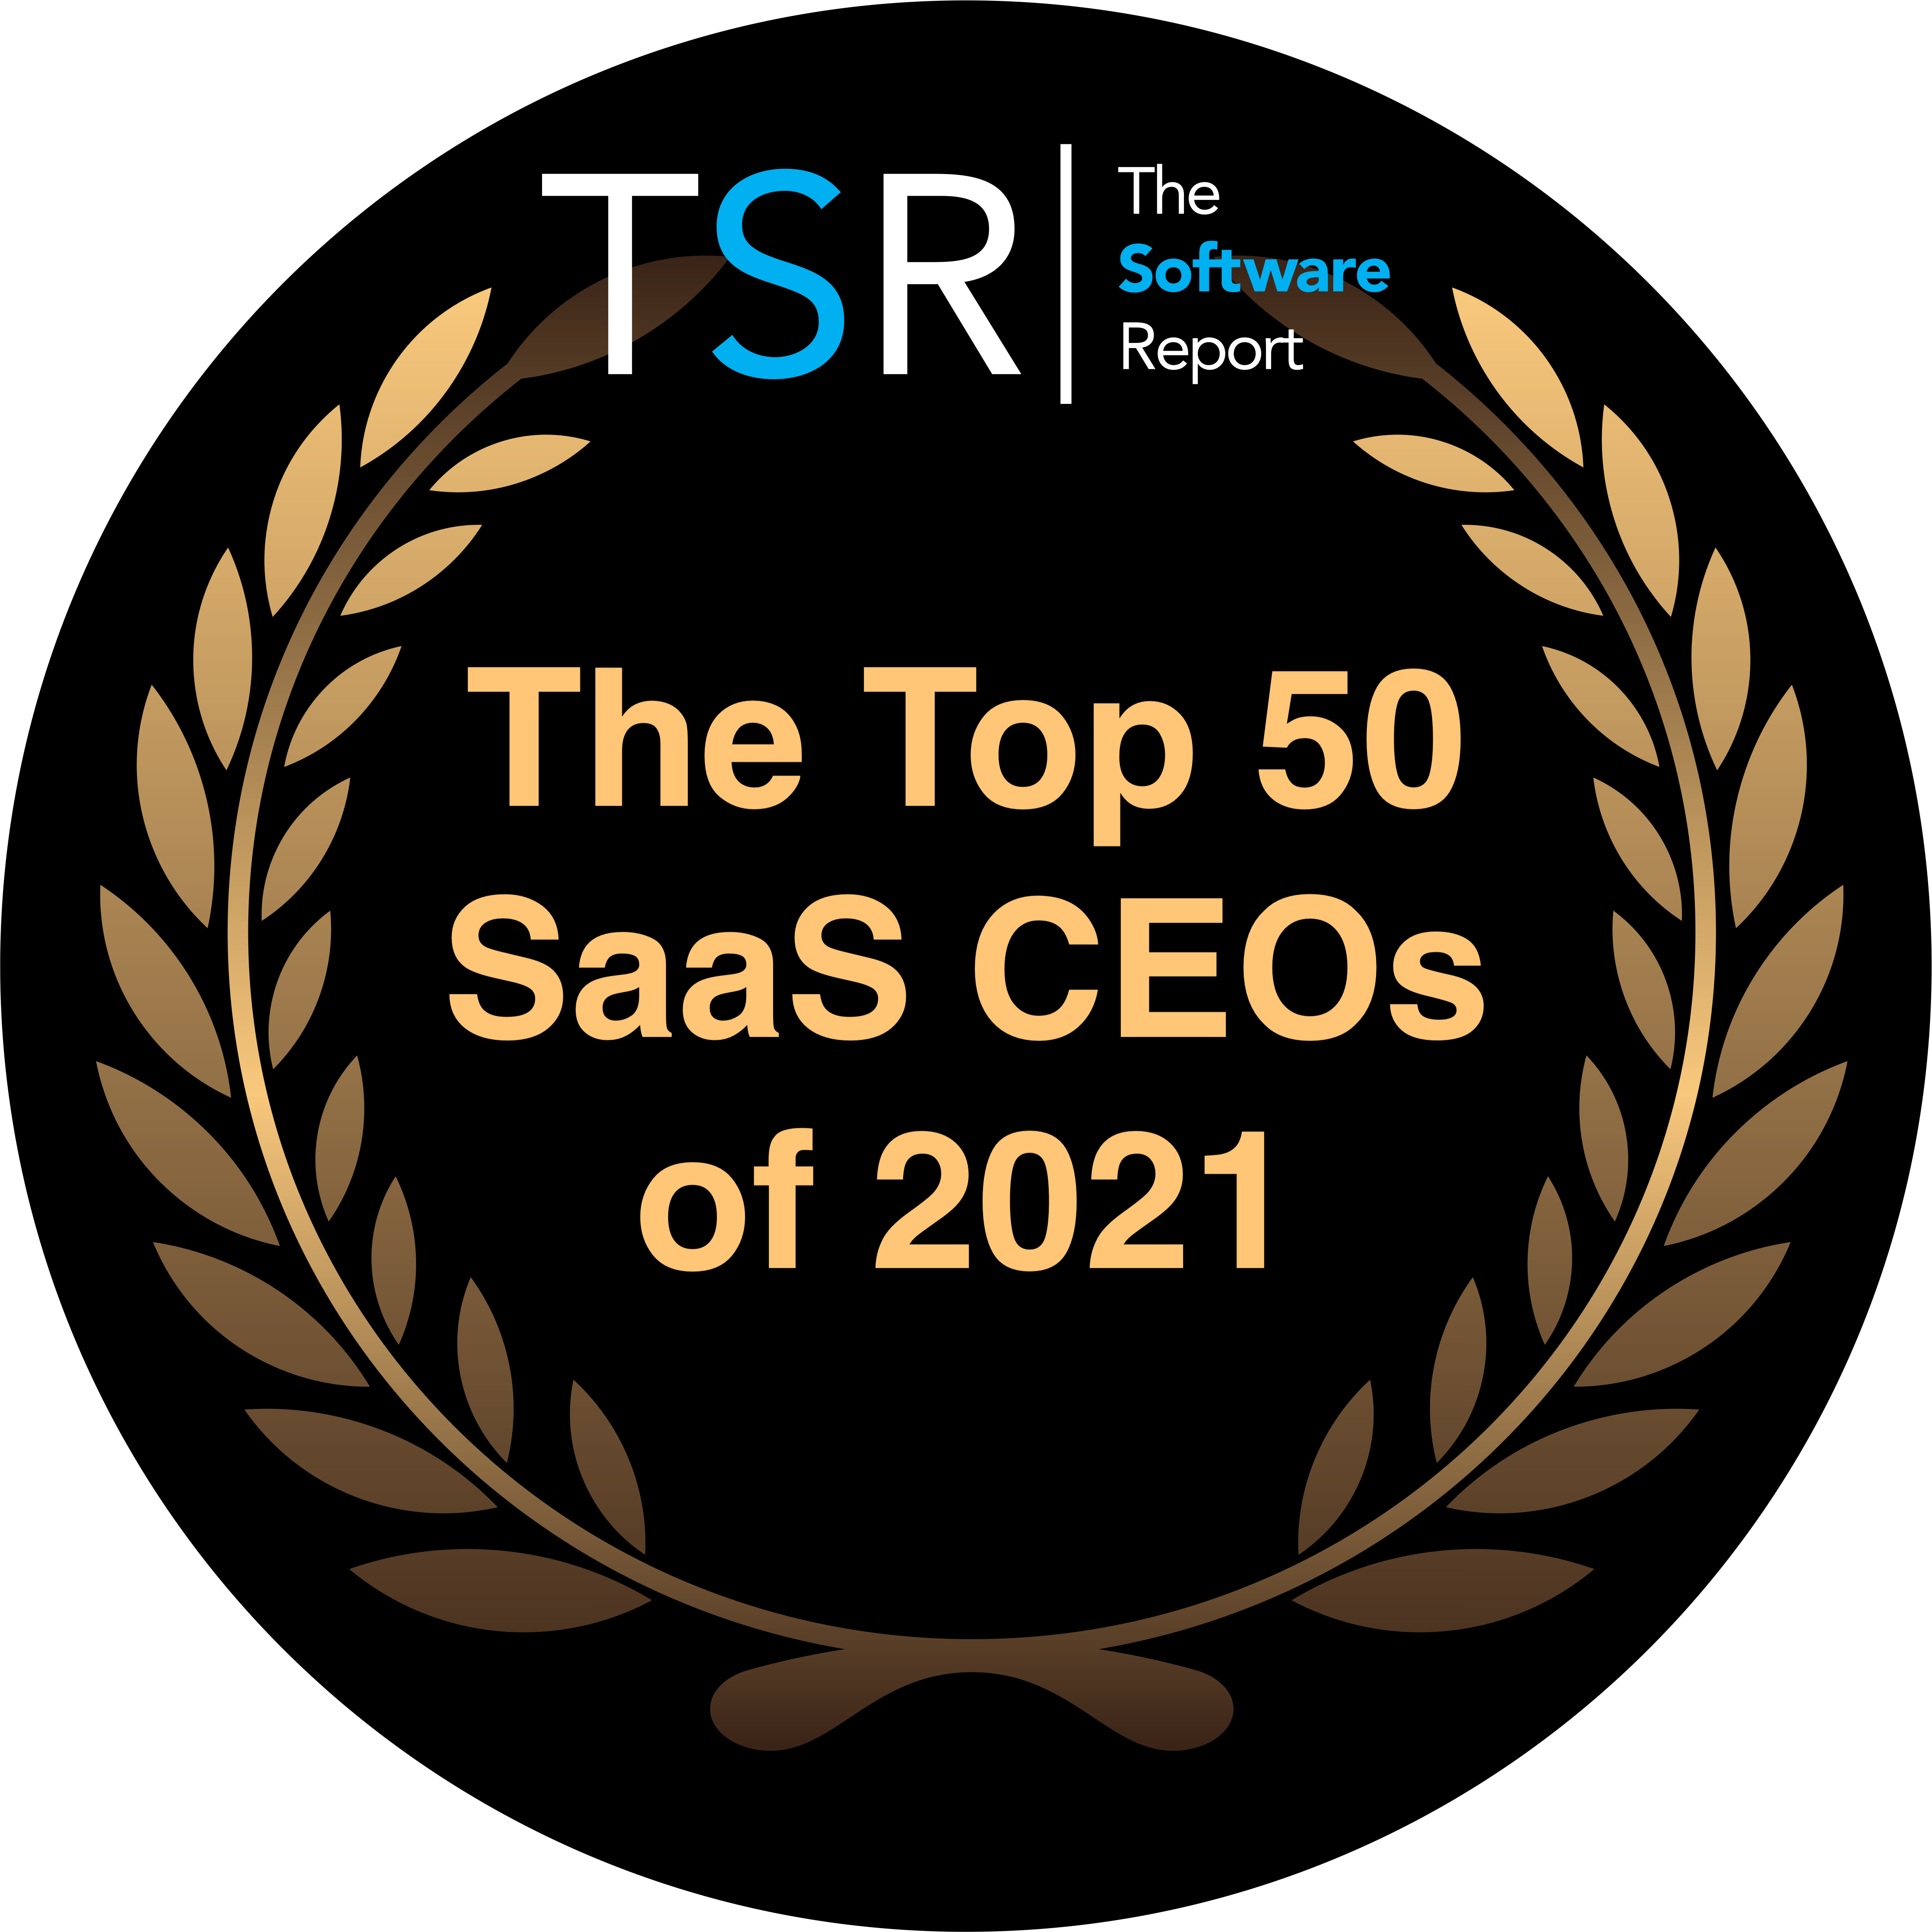 SPS Commerce's Archie Black received Top SaaS CEO in 2021